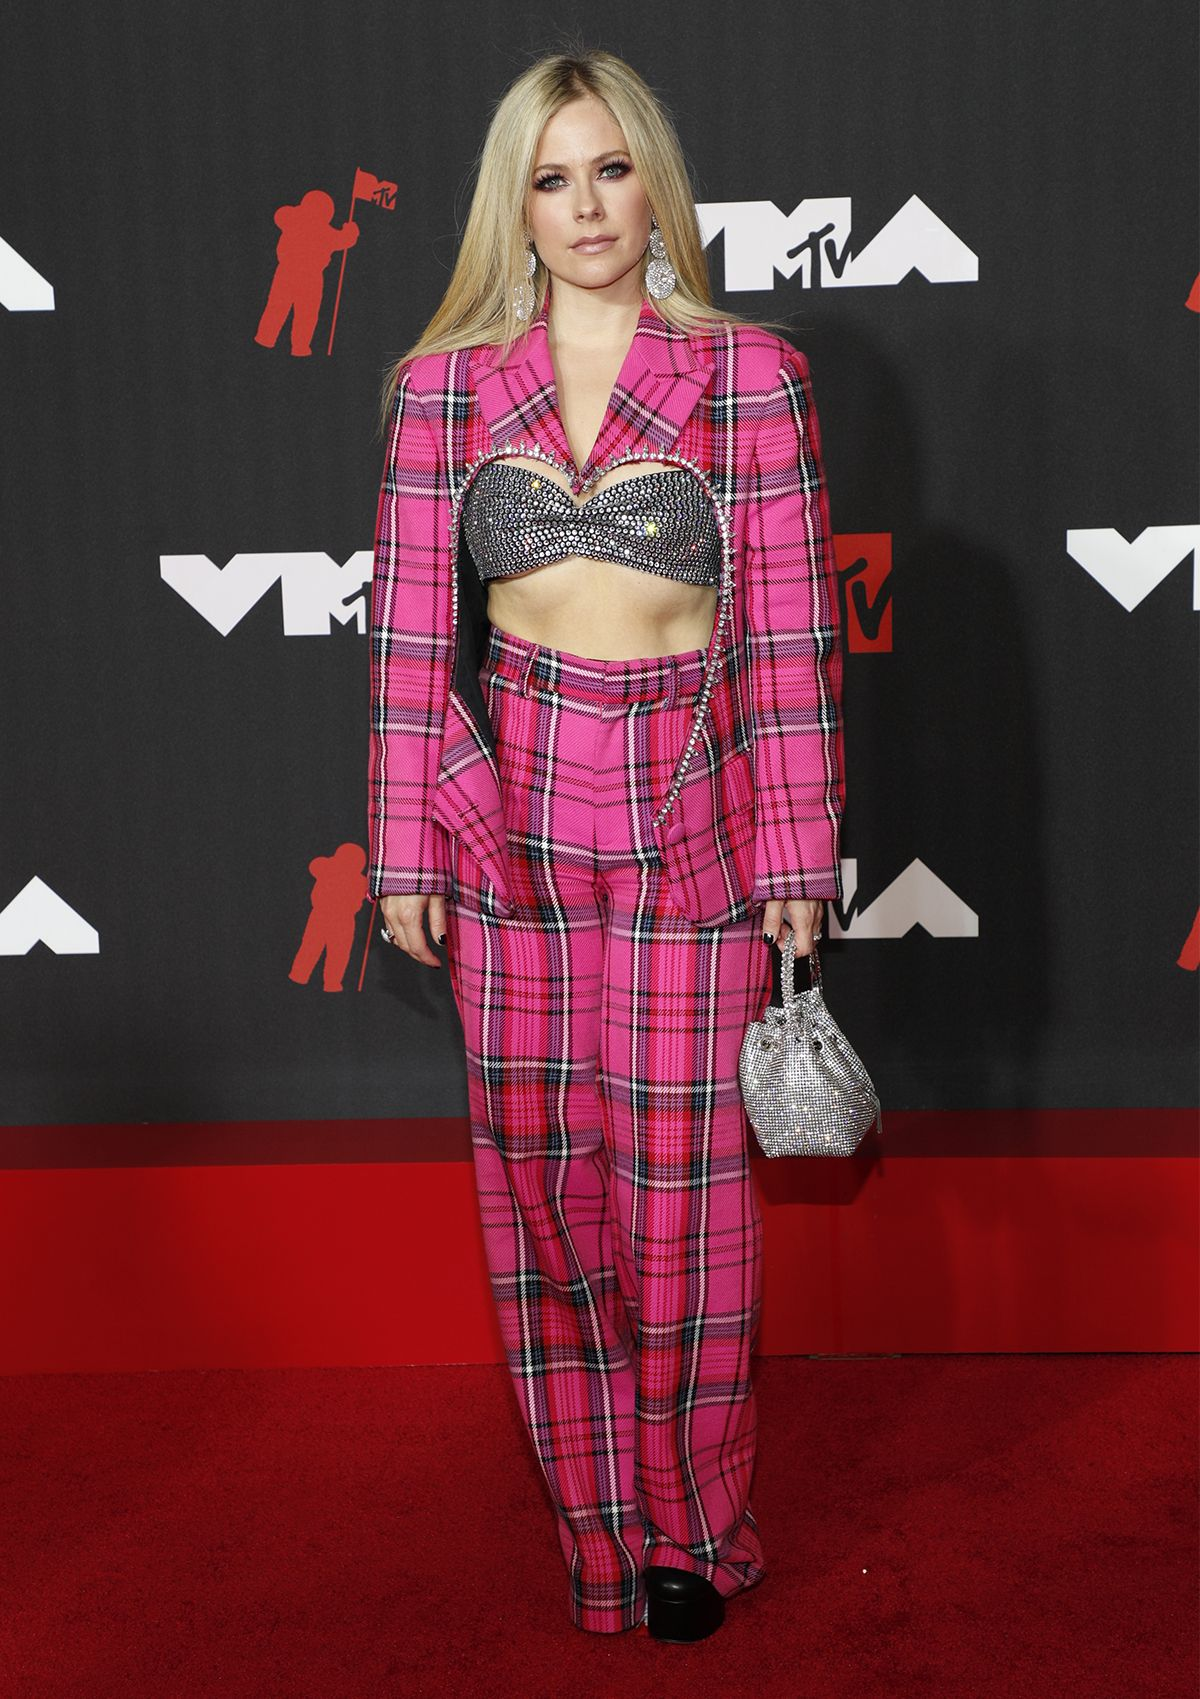 The MTV VMAs Red Carpet Looks That Shocked and Amazed Us - mtv vma red carpet 2021 295172 1631489144016